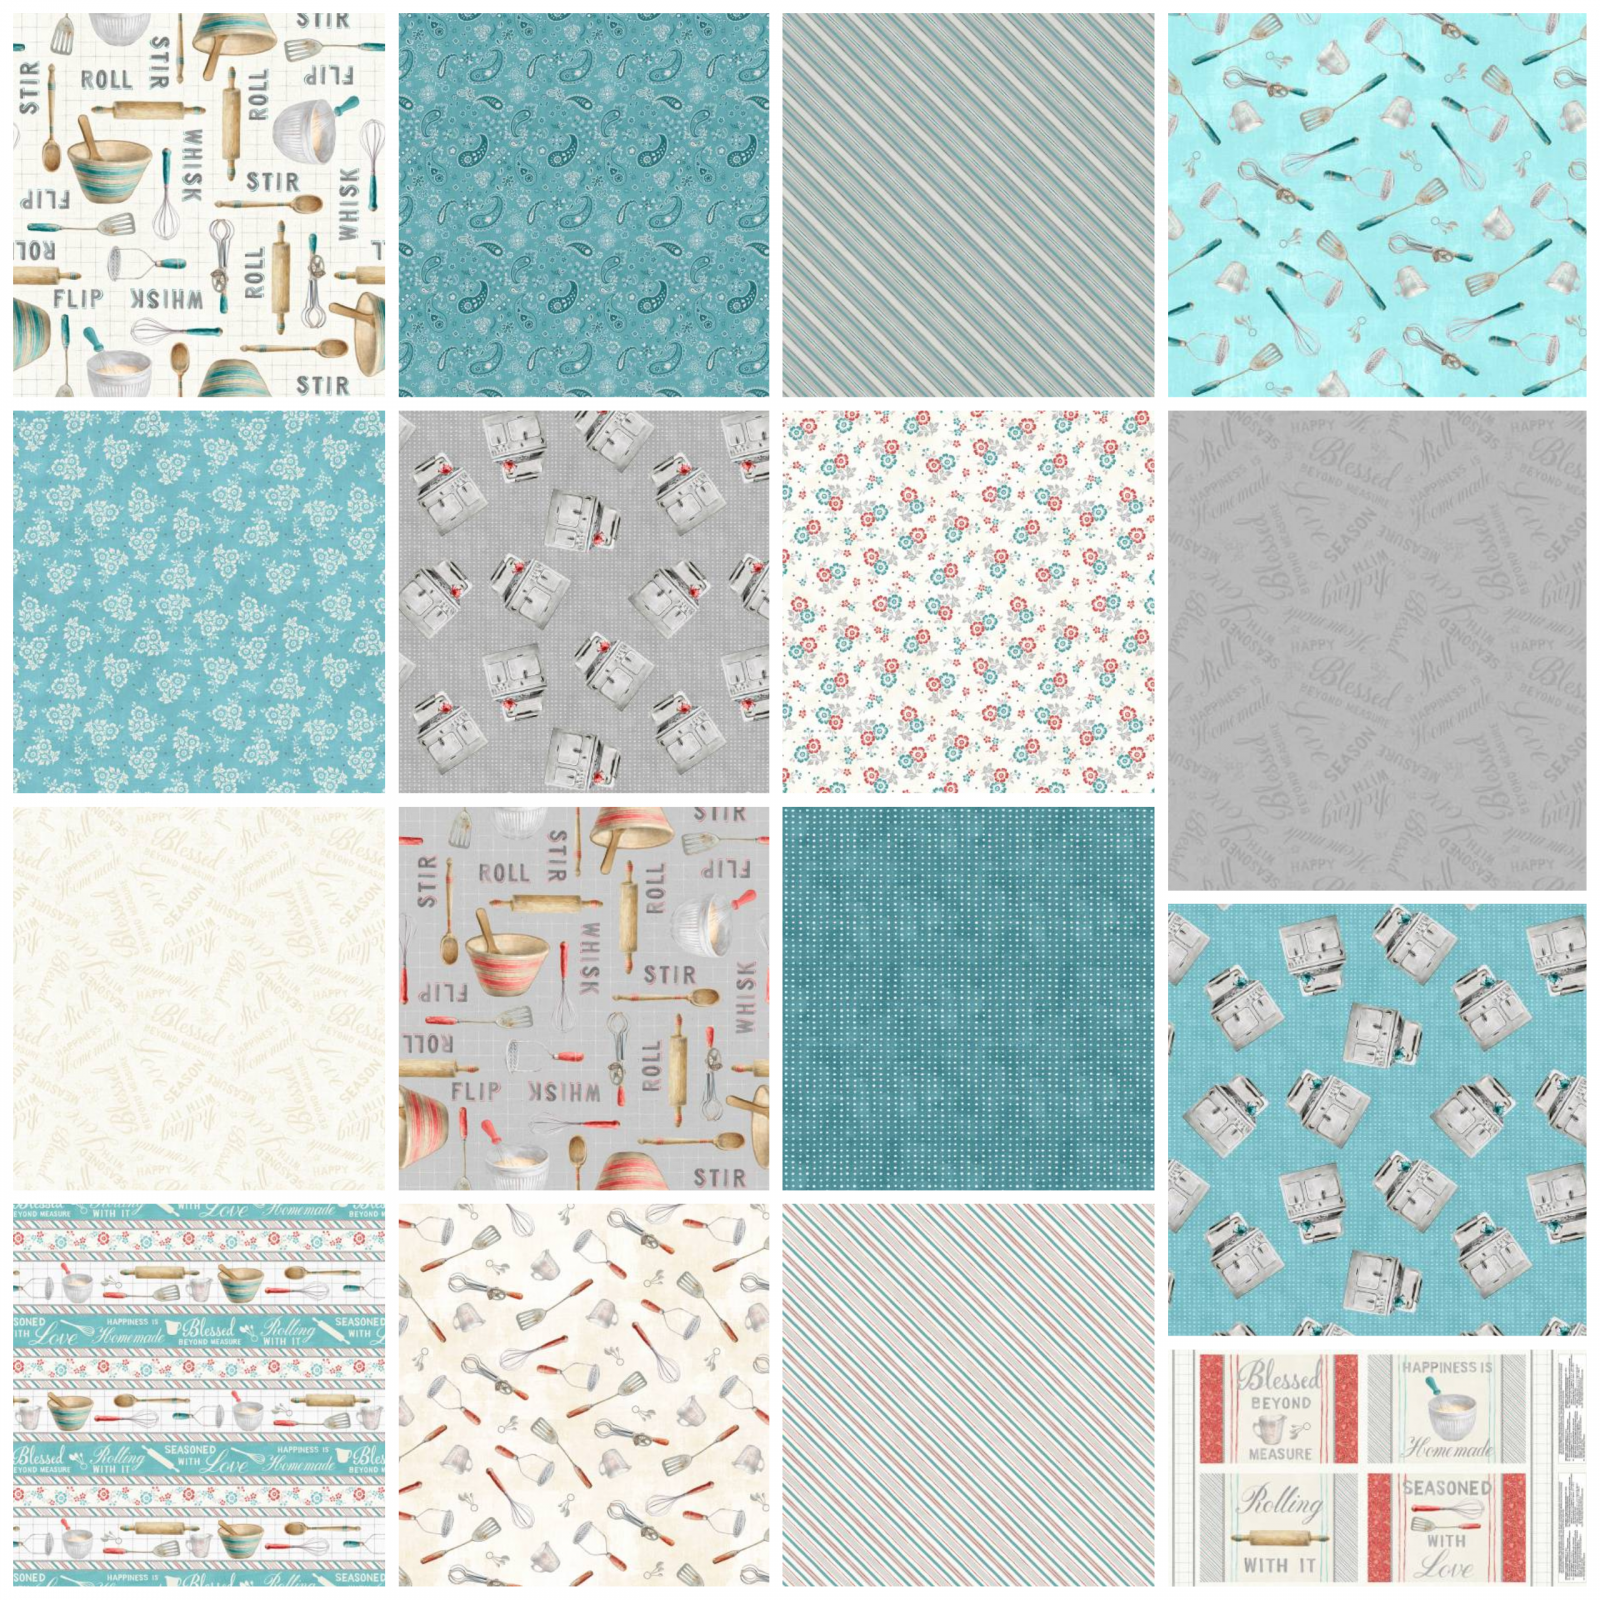 Homemade Happiness - Fat Quarter Bundle, Full Collection- by Danhui Nai for Wilmington Prints